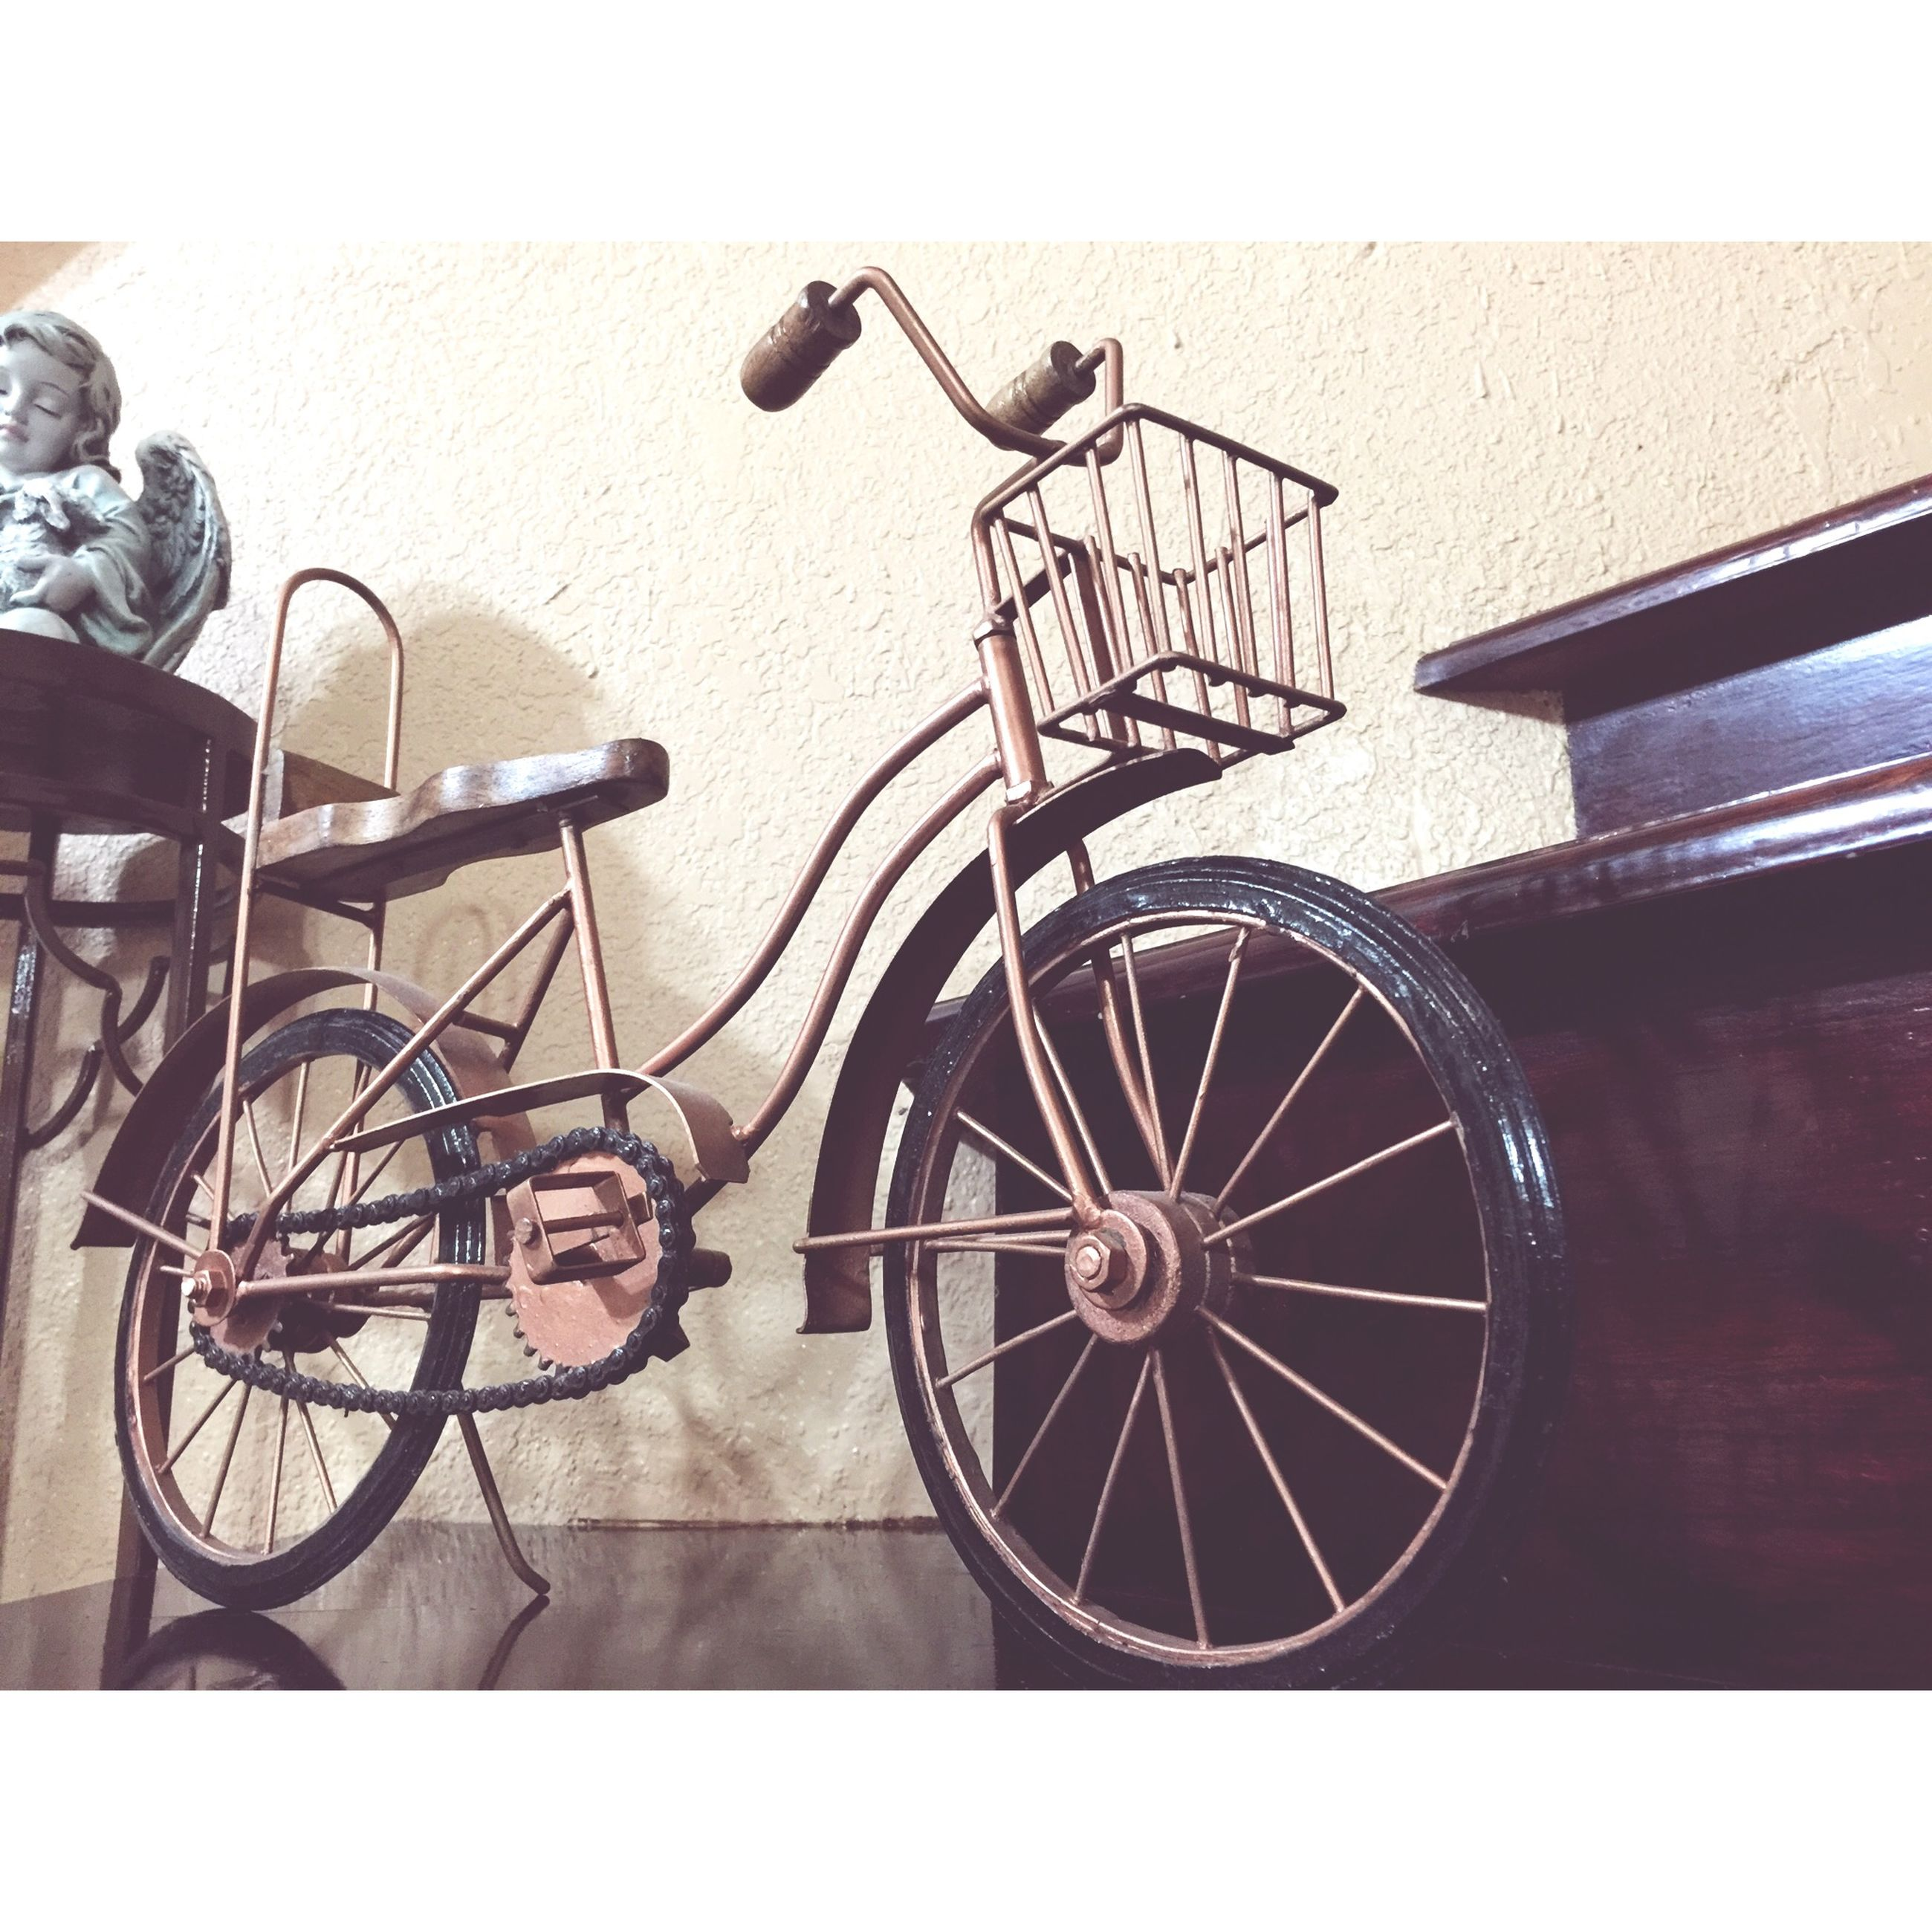 bicycle, transportation, mode of transport, land vehicle, stationary, parked, wheel, parking, wall - building feature, auto post production filter, transfer print, no people, built structure, wall, day, cycle, outdoors, architecture, old-fashioned, leaning